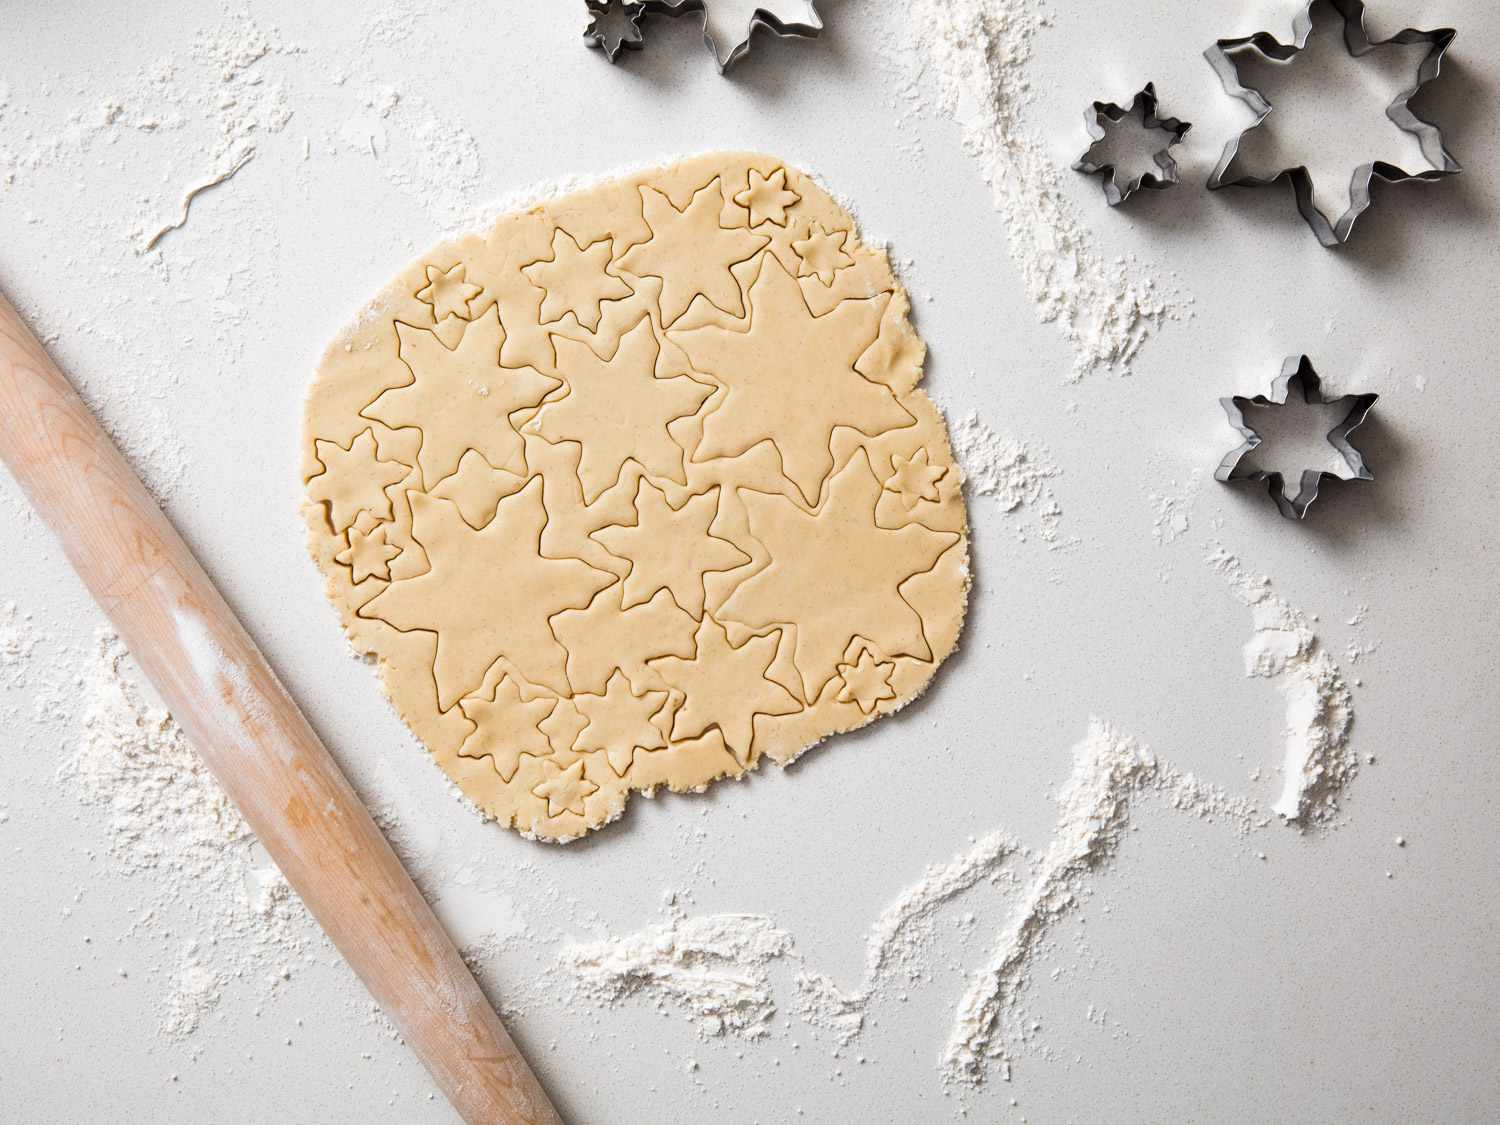 A rectangular piece of sugar cookie dough with snowflake cookie shapes cut into it, and snowflake cookie cutters nearby